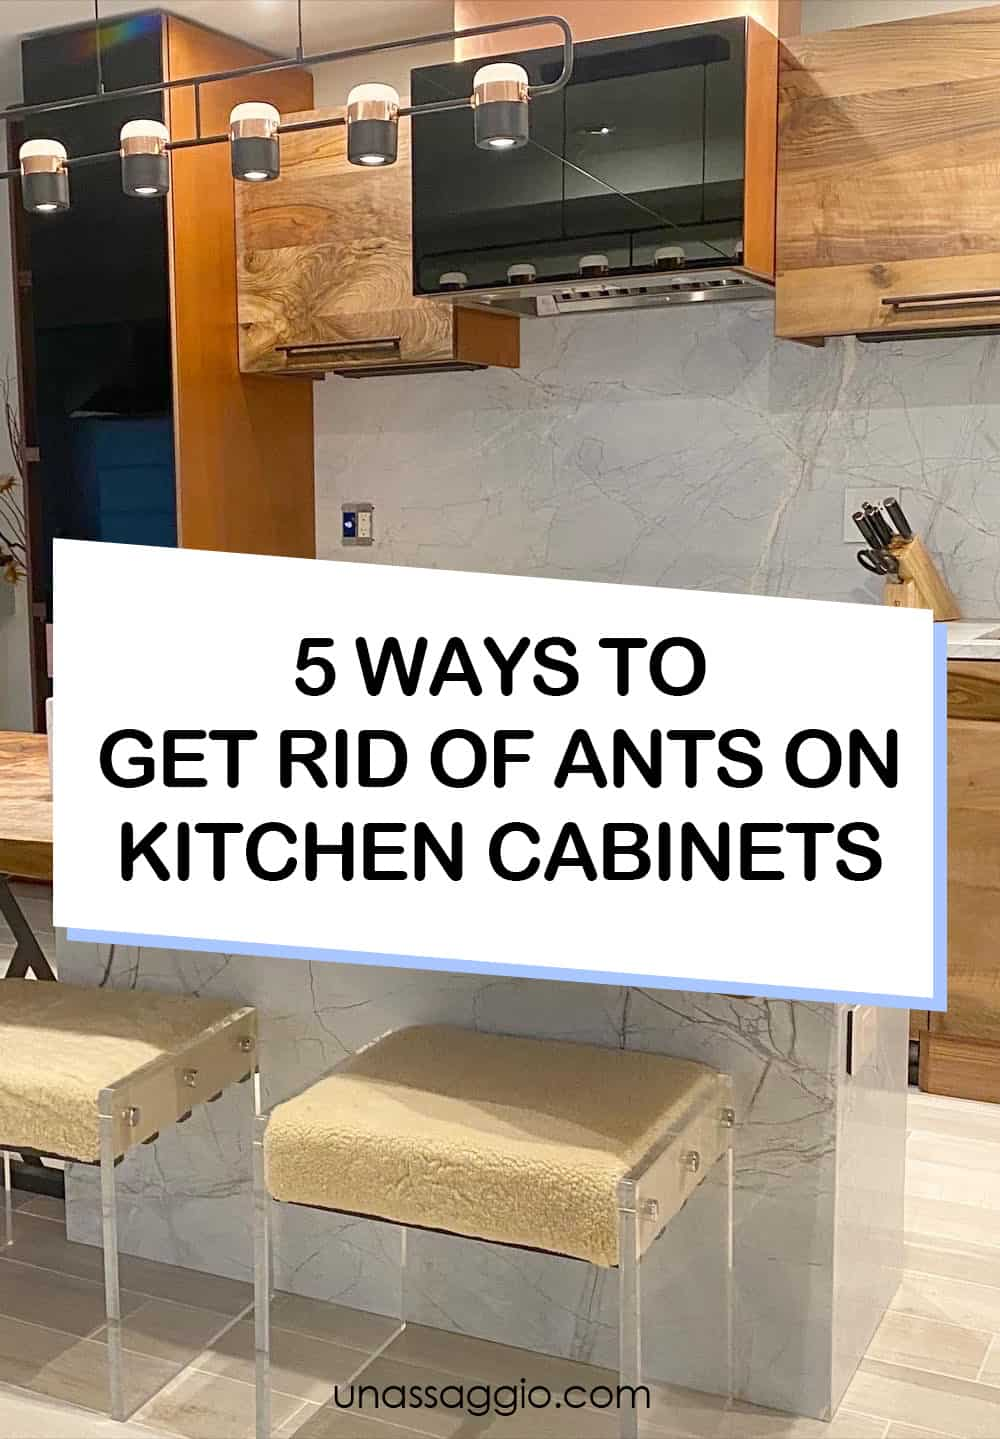 5 Ways to Get Rid Of Ants On Kitchen Cabinets